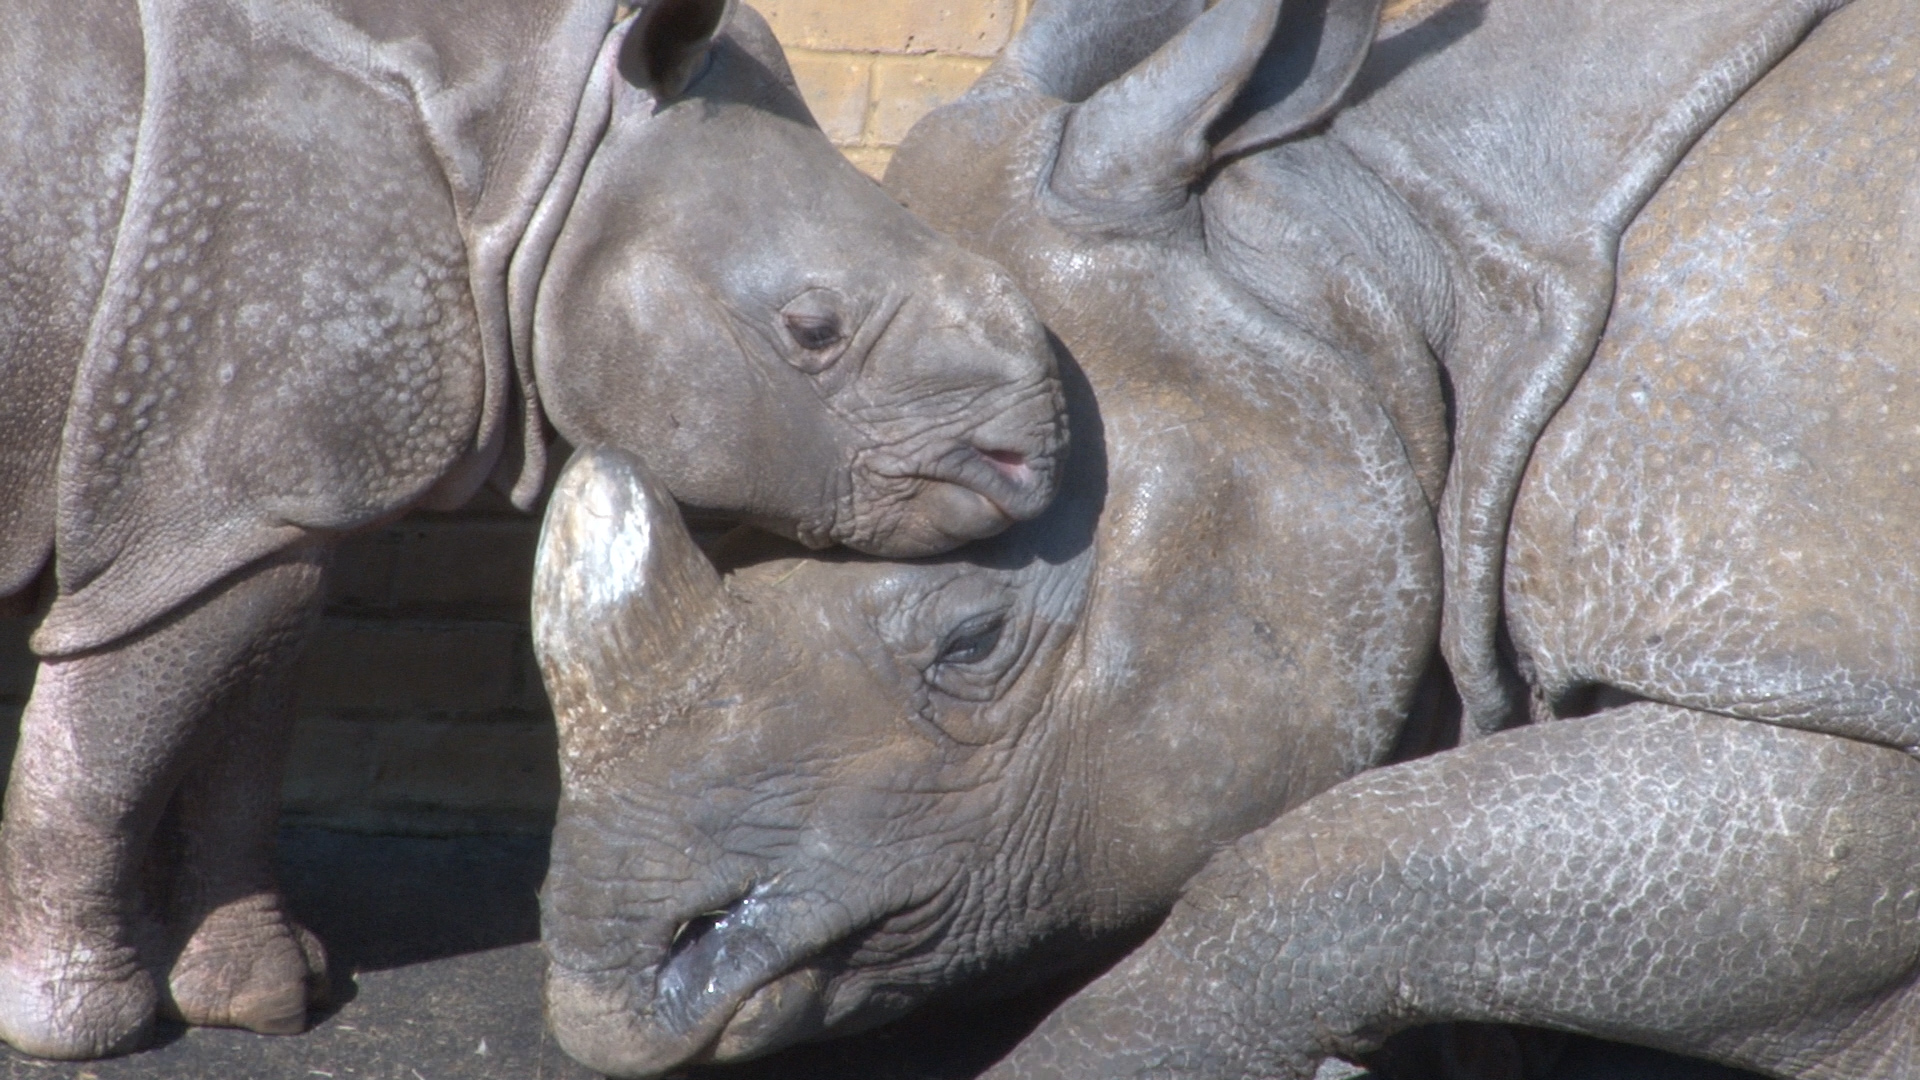 Baby Asian rhino Jamil with mother Behan at ZSL Whipsnade Zoo.